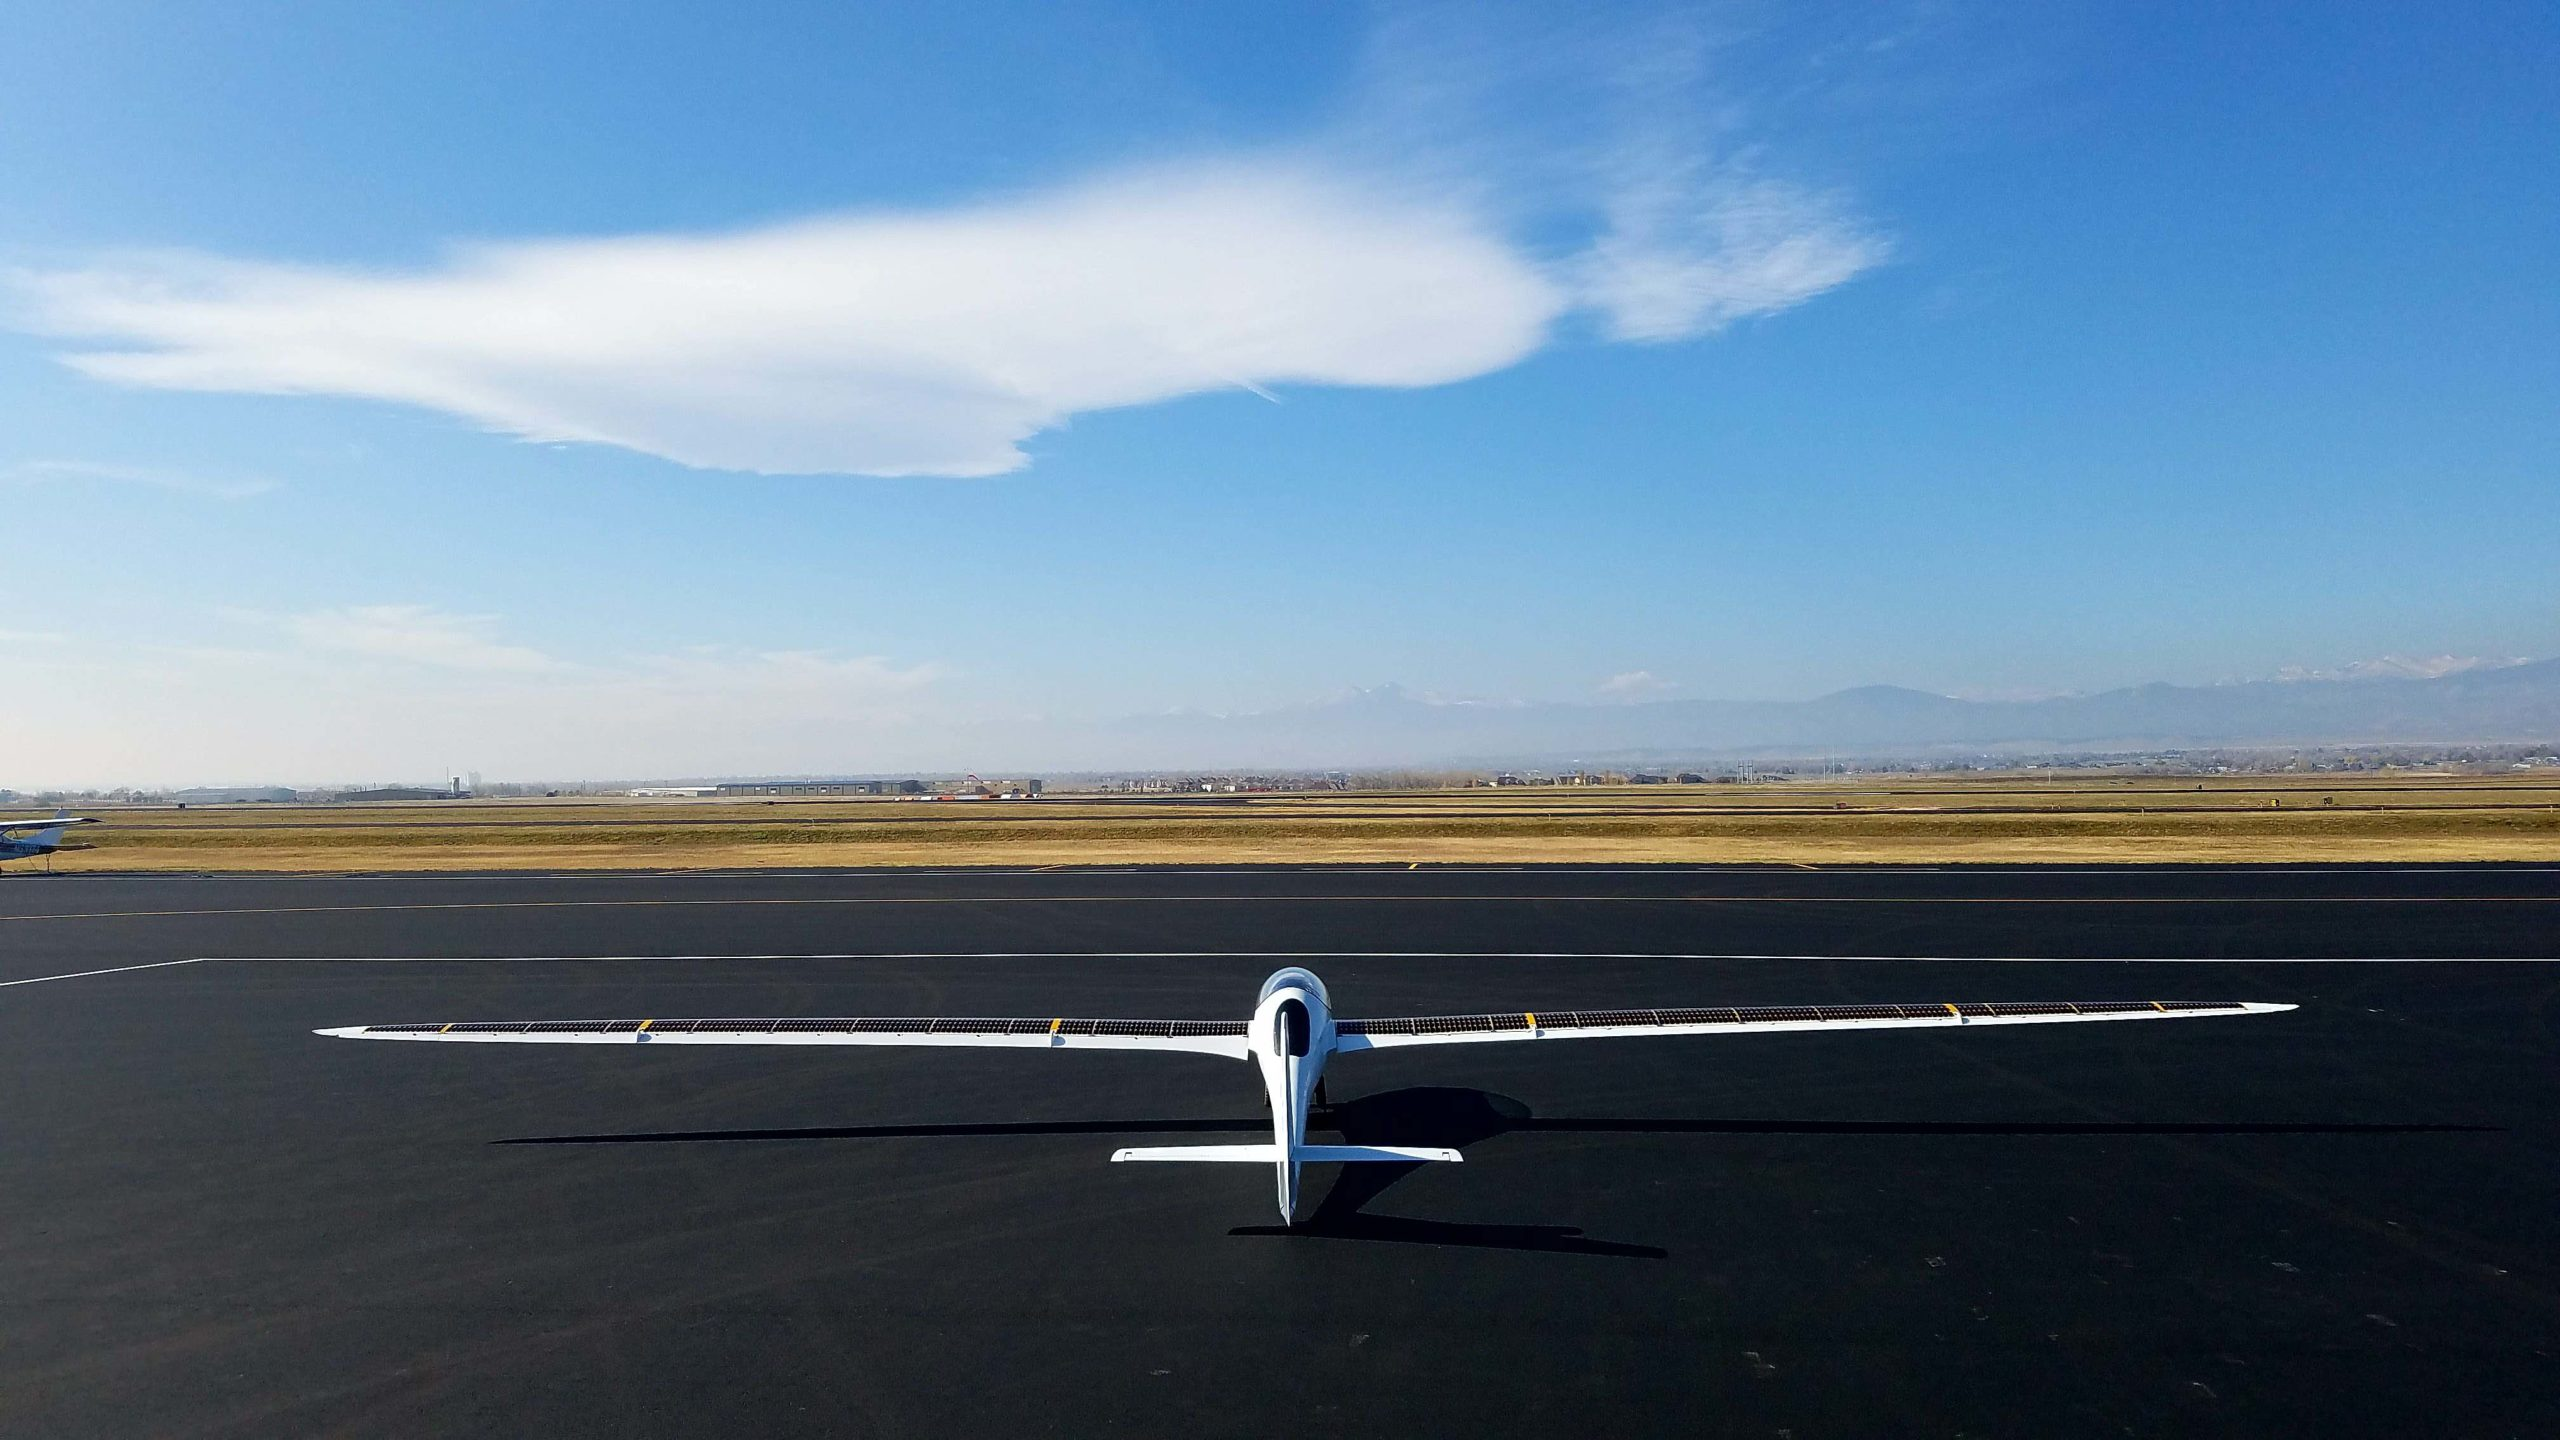 SolAero's PV technology on a prototype UAV project with the firm Bye Aerospace.